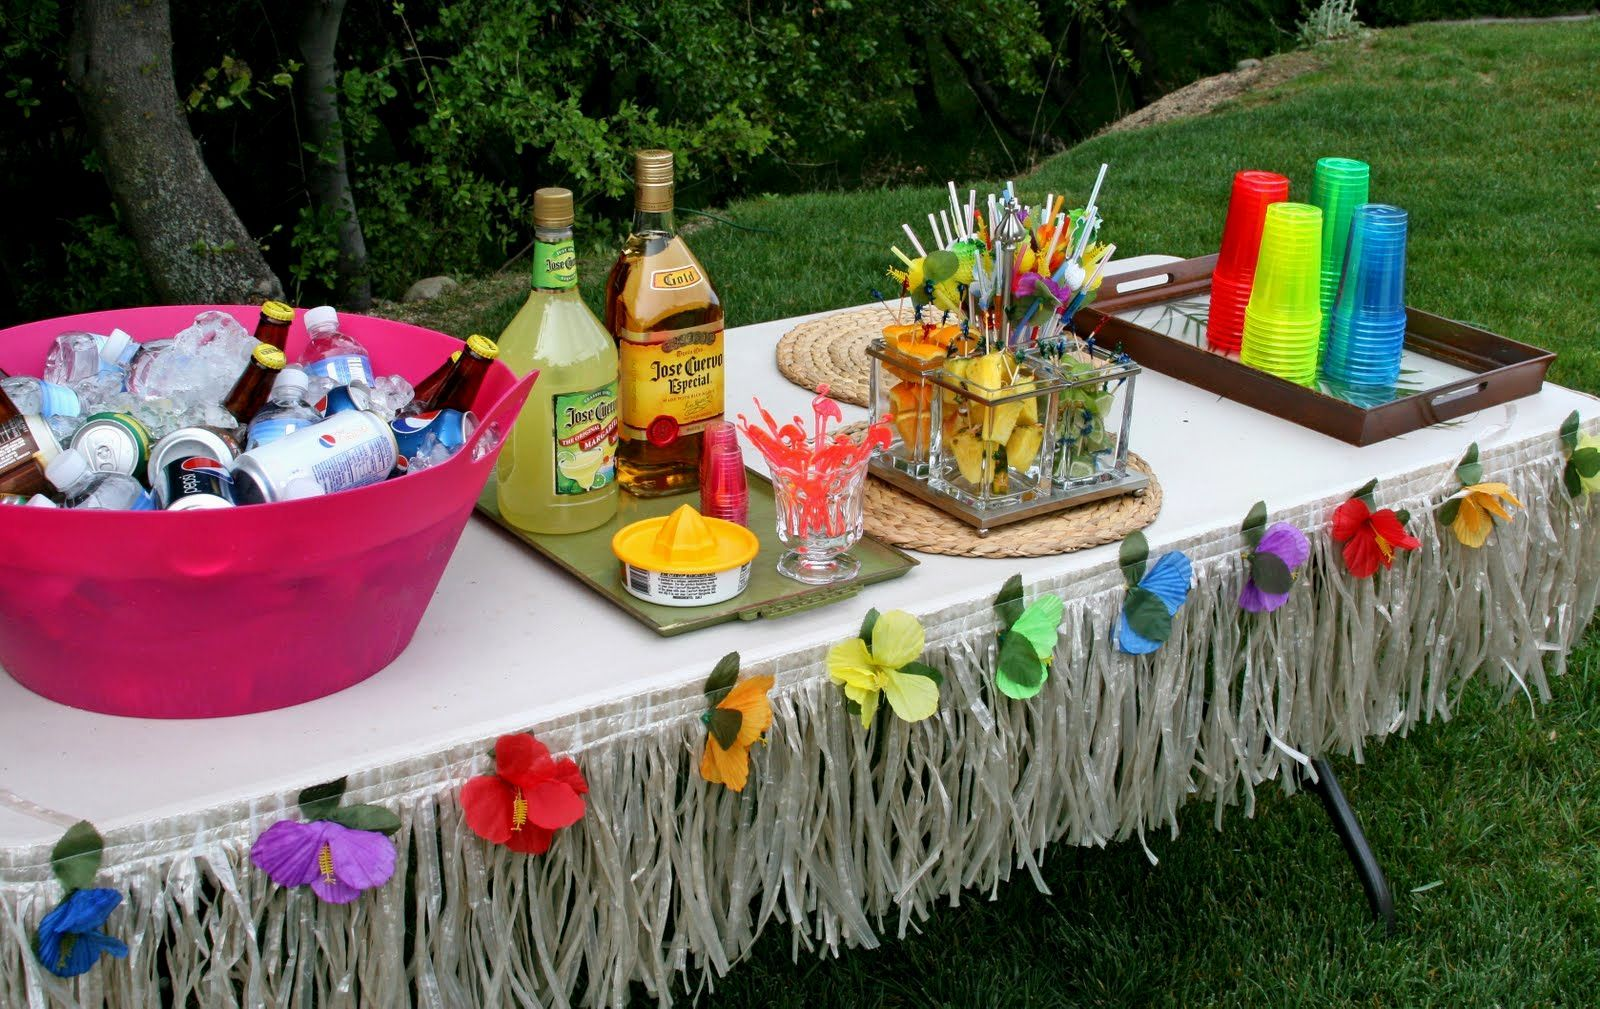 Caribbean Theme Party Ideas On Pinterest: Hawaiian-themed-party-ideas-island-themed-party-ideas.jpg